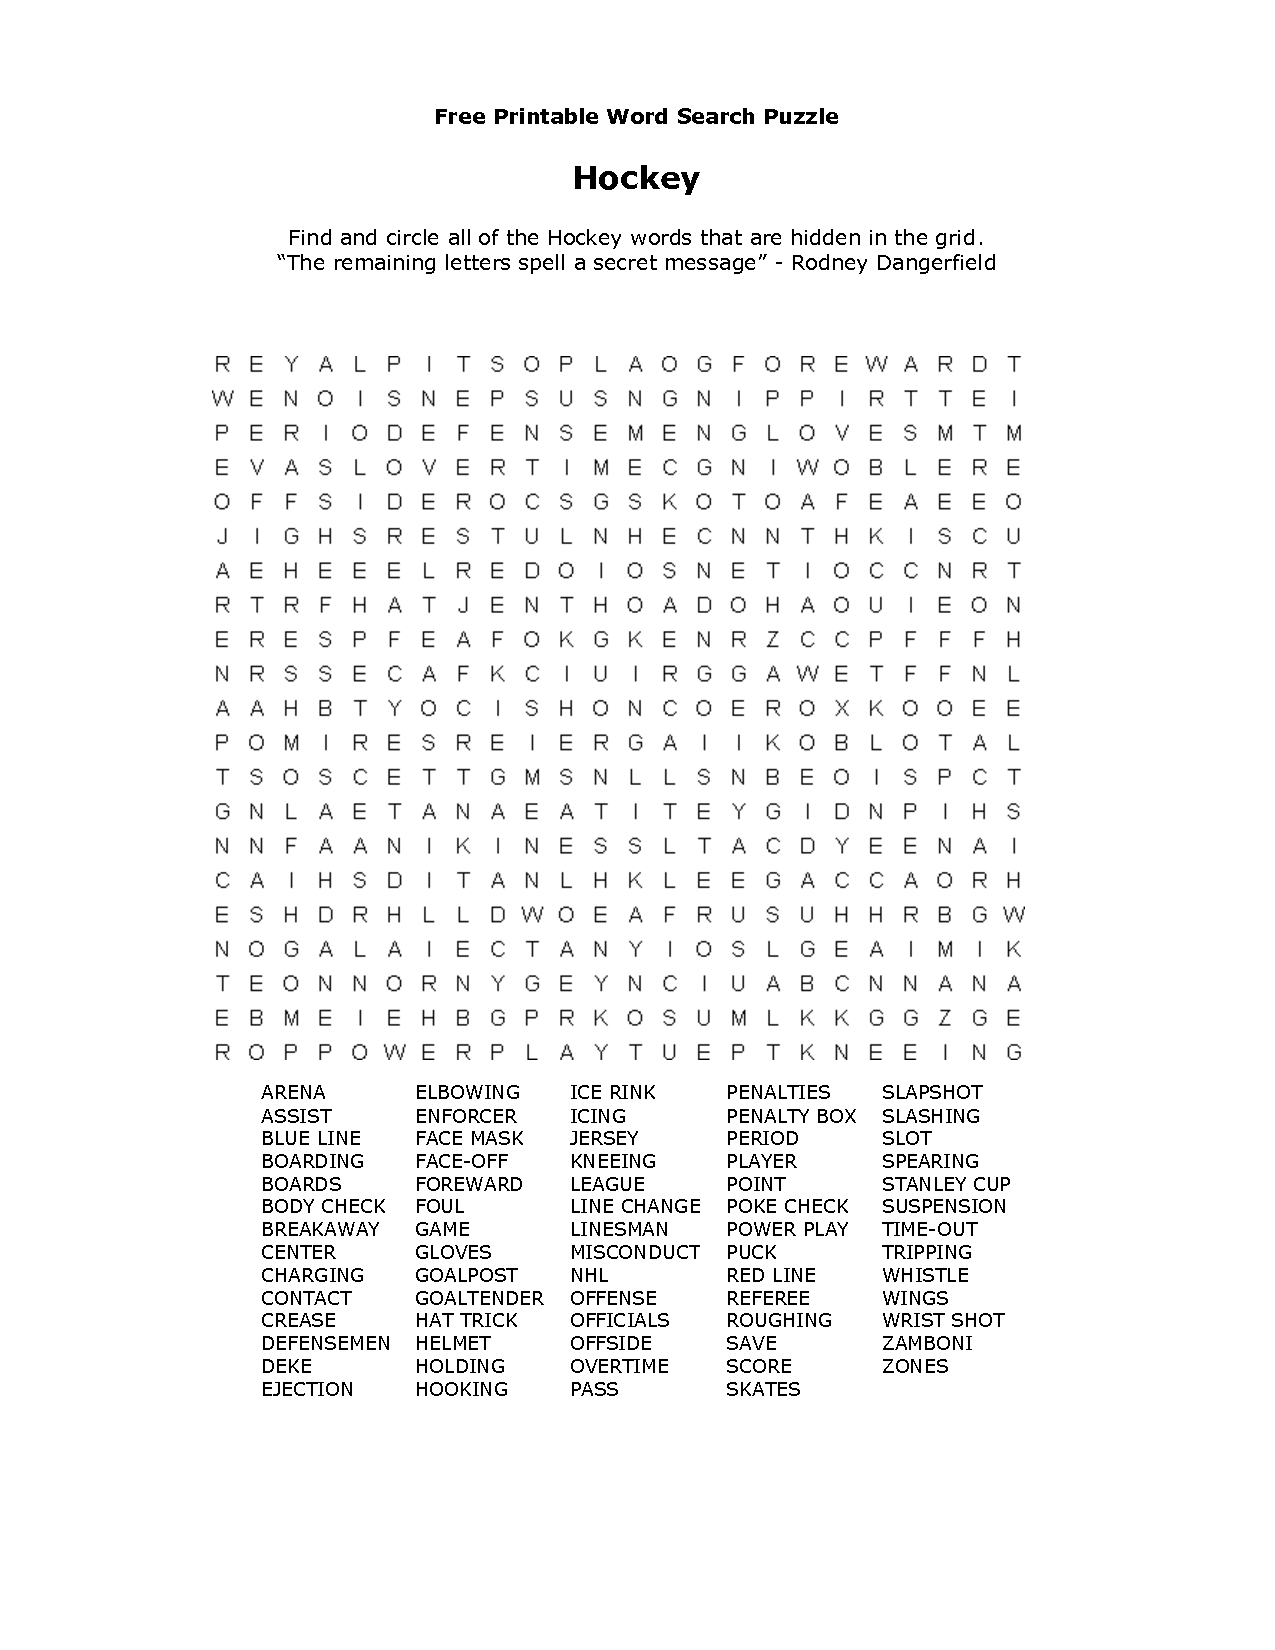 Chase Haake (20Haake02) On Pinterest - Free Printable Wwe Word Search